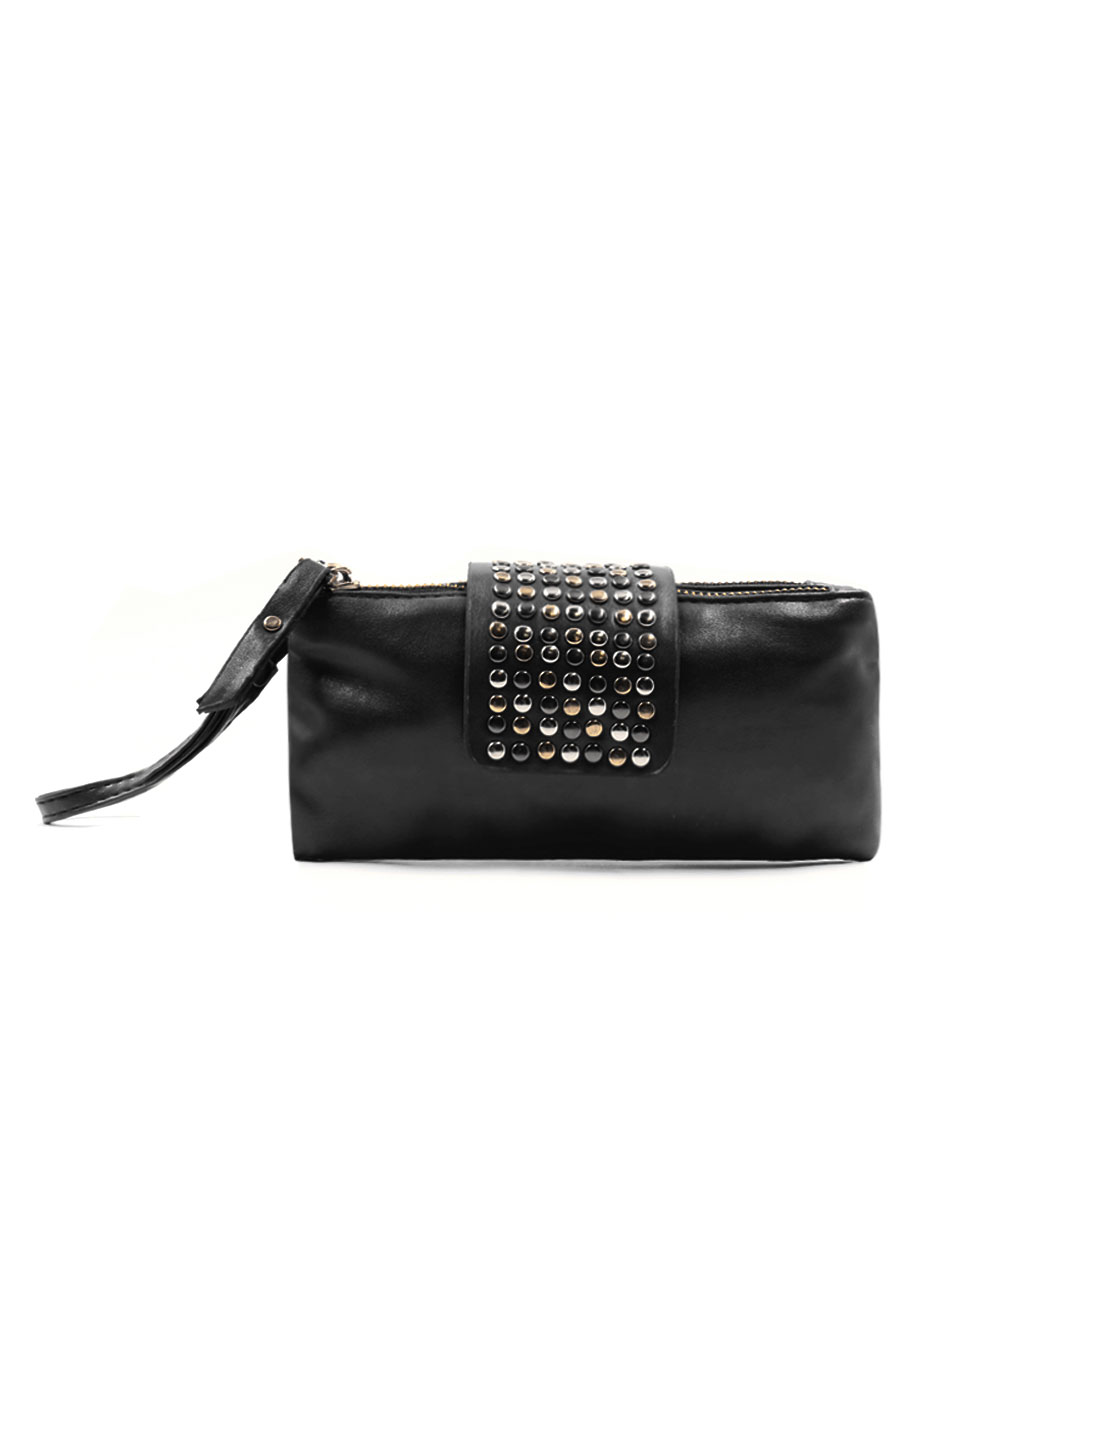 Lady Studs Embellished Magnetic Flap Closure Imitation Leather Clutch Black